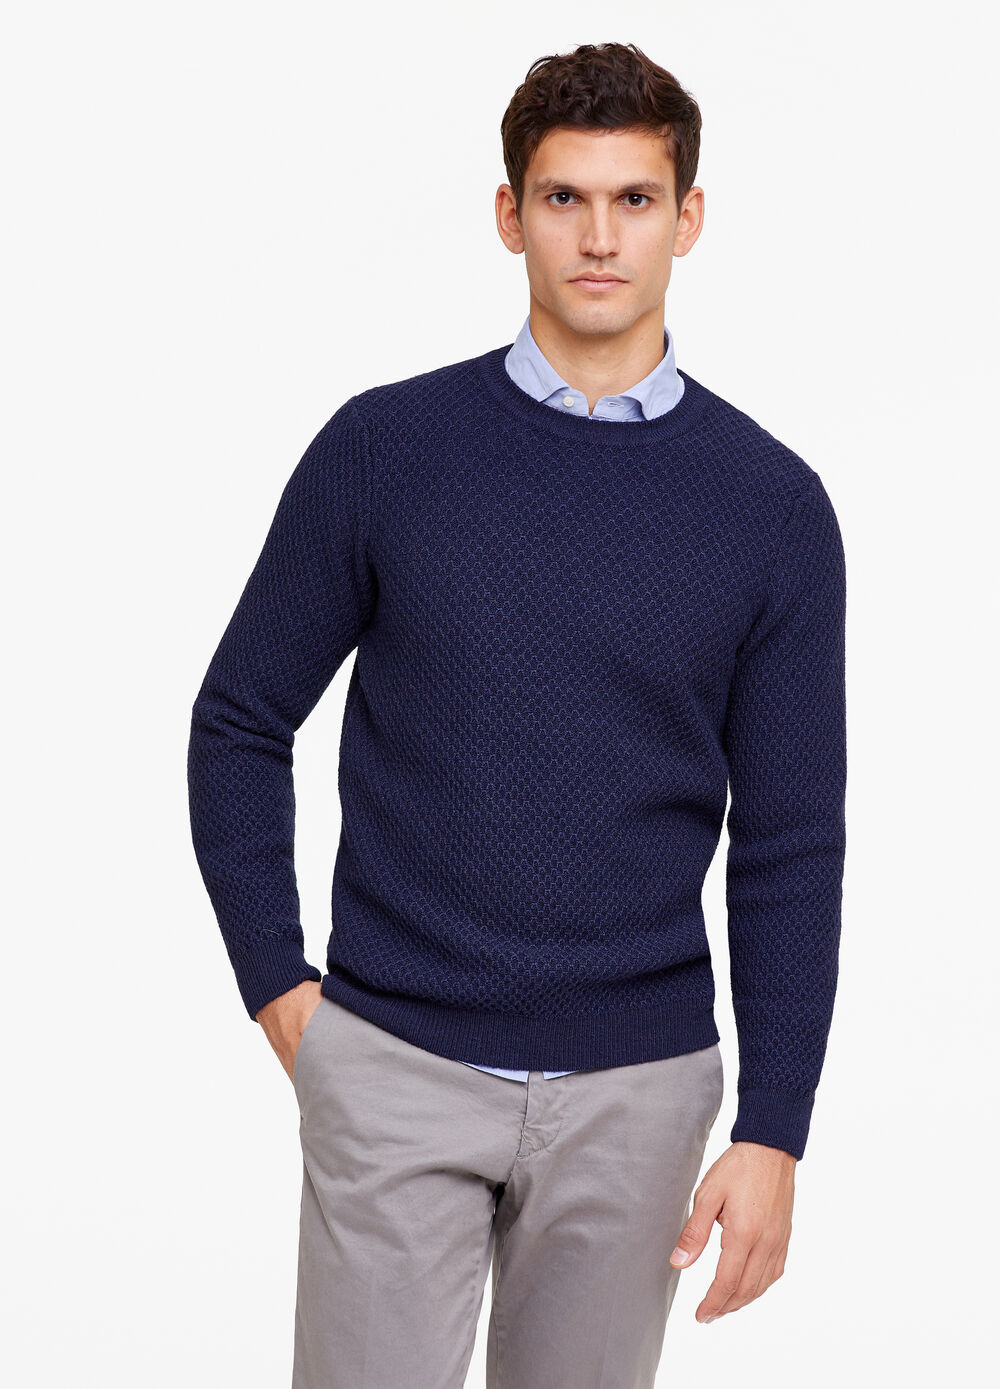 Rumford knitted pullover in wool blend